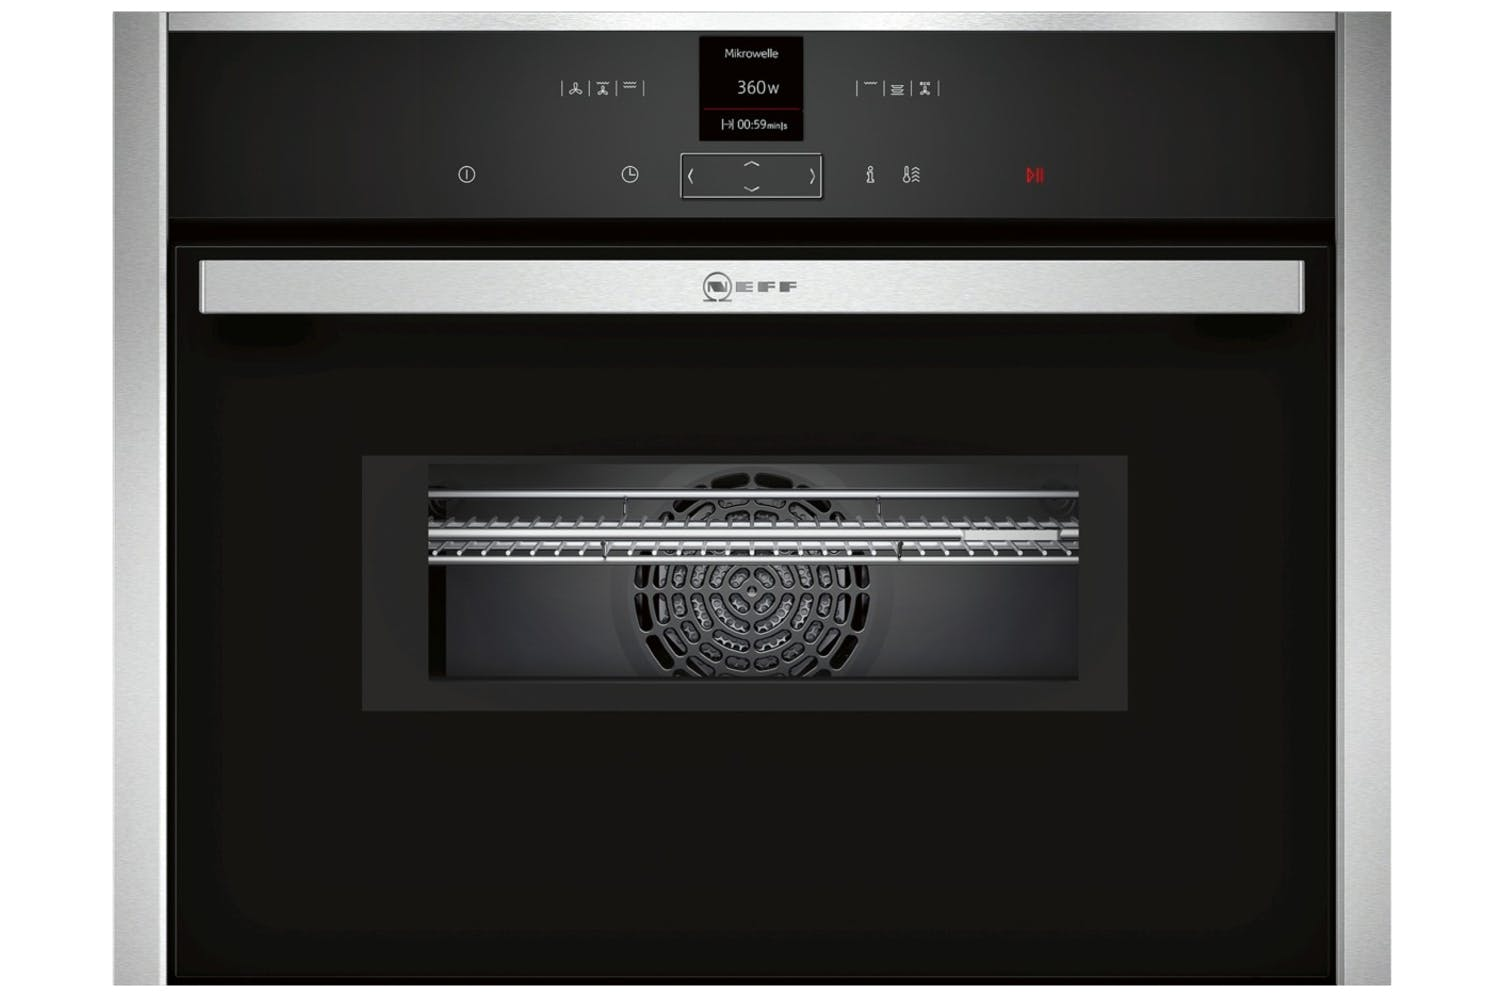 b72d5a9fb8d Neff Built-in Combination Microwave Oven